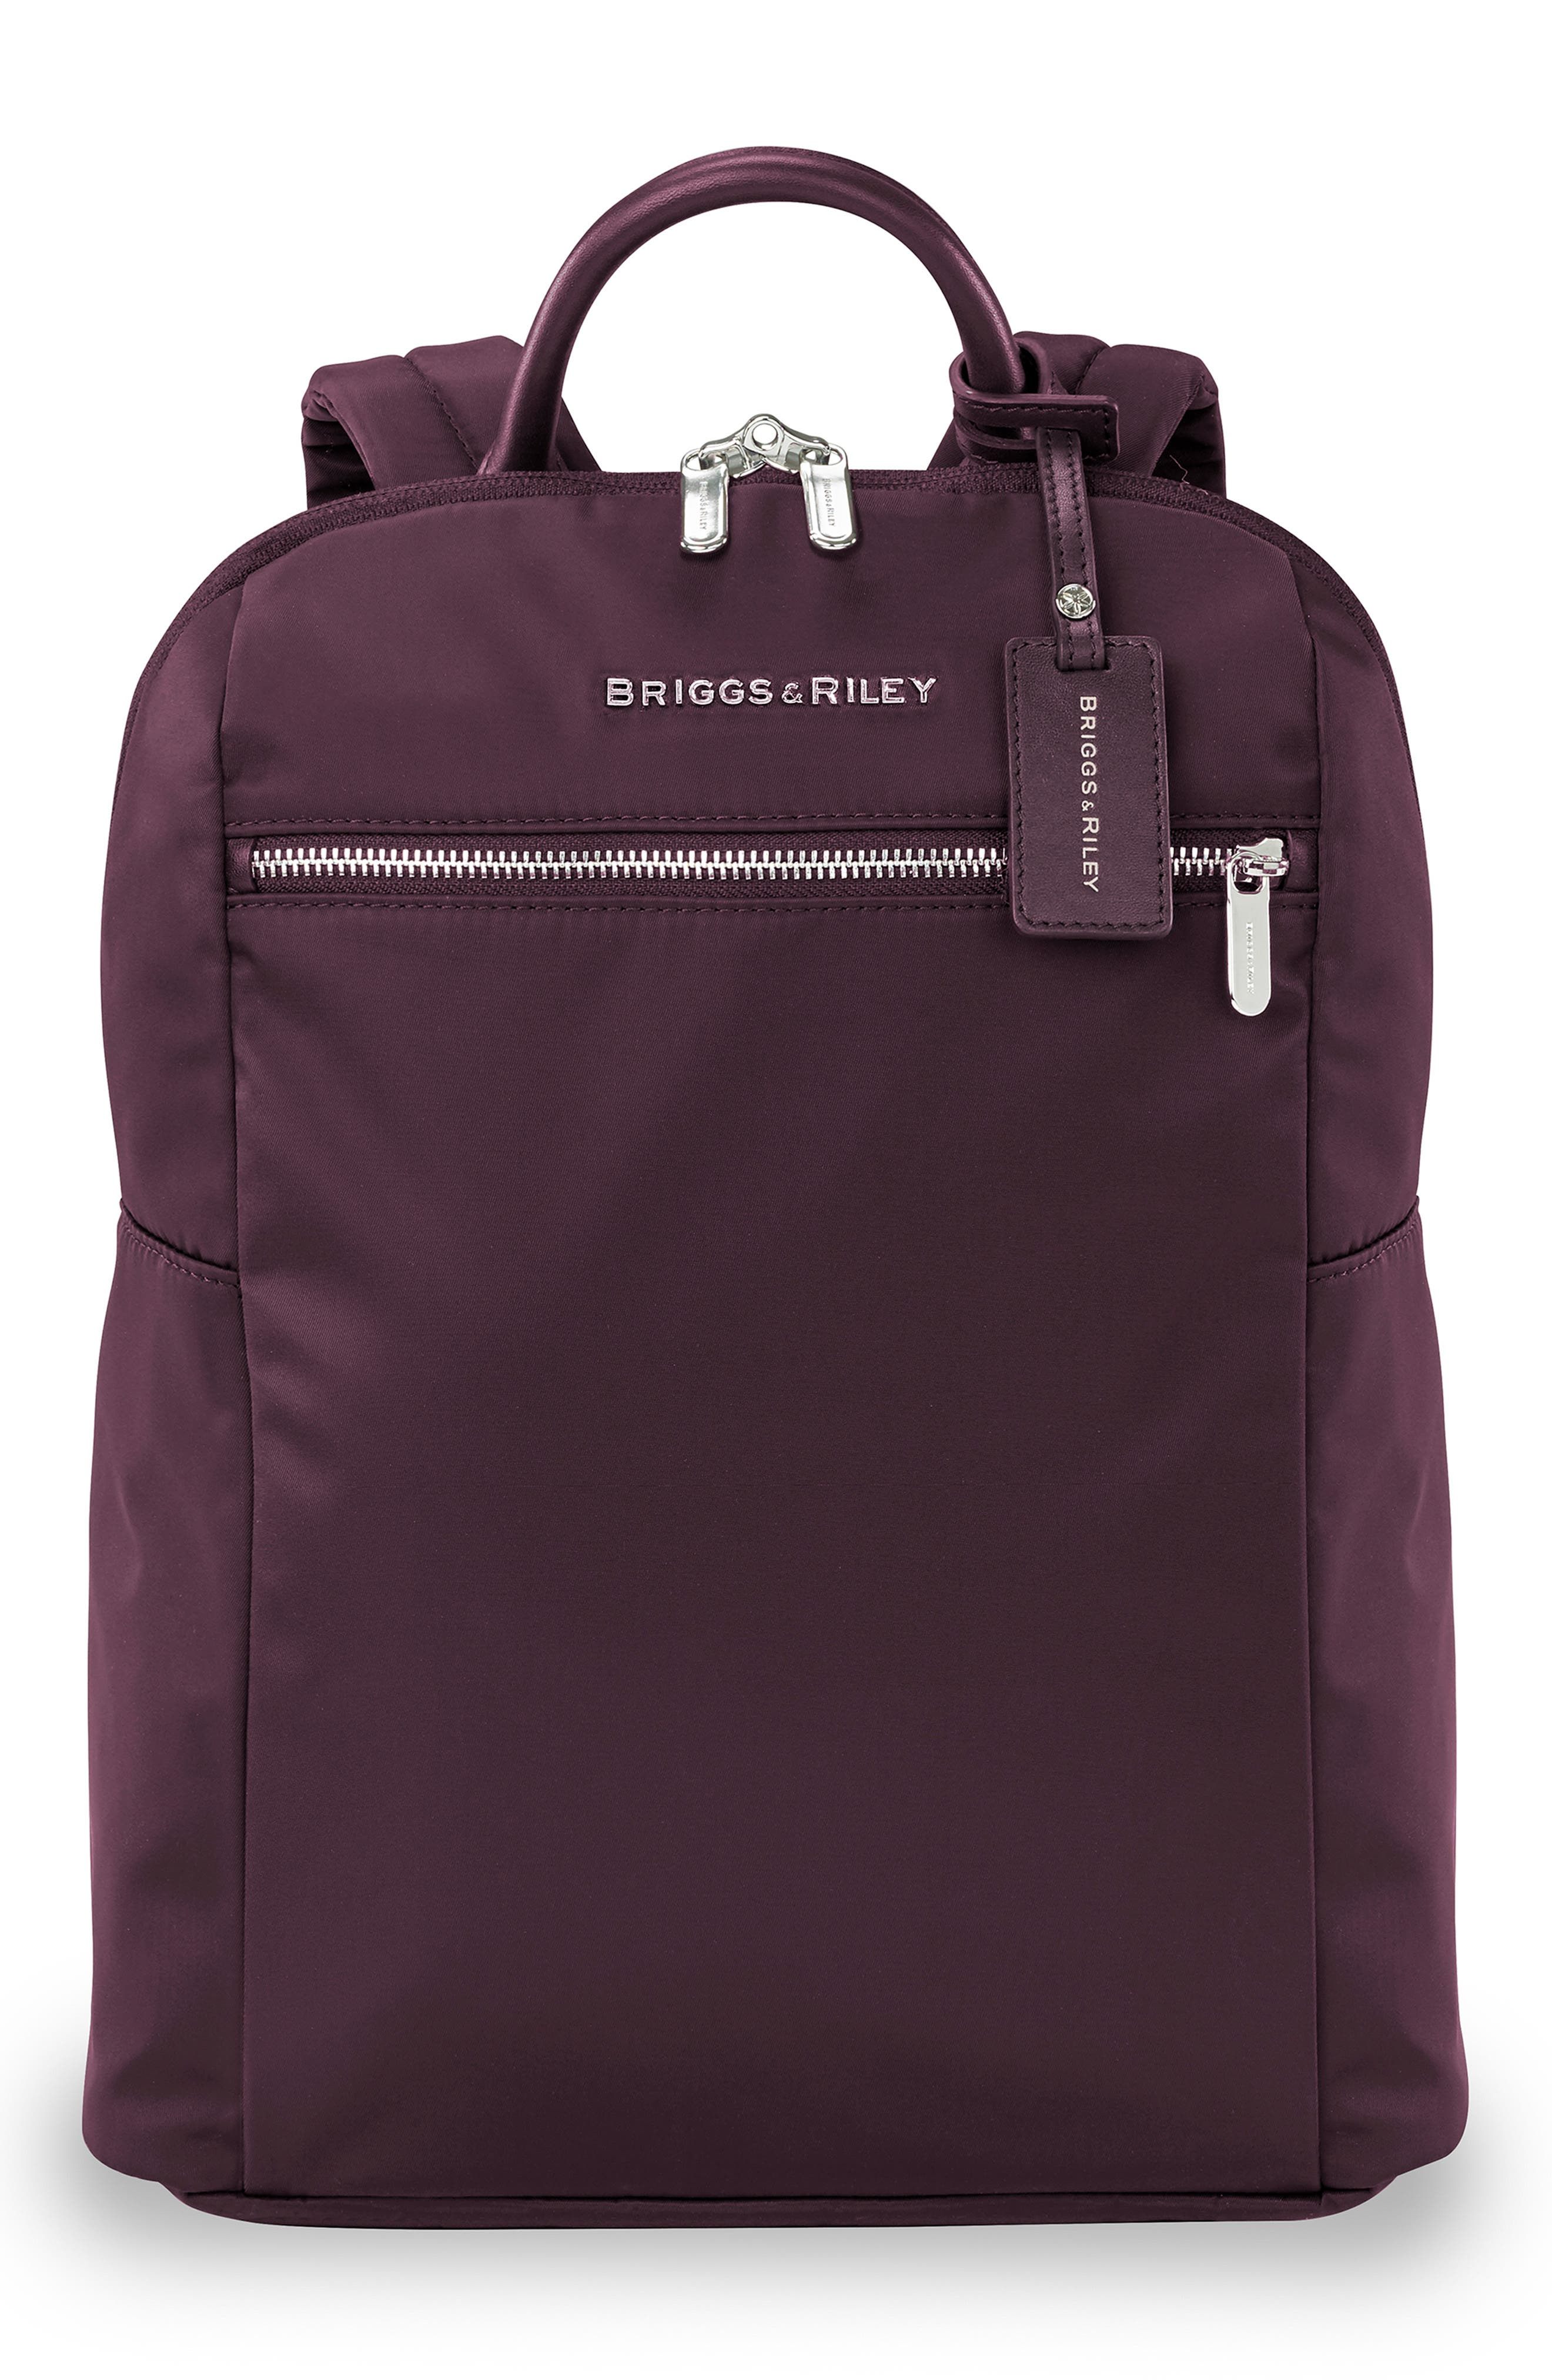 Fine metallic branding touches up a slim, modern backpack built from lightweight micro-weave tech fabric to resist moisture and abrasion. Style Name: Briggs & Riley Slim Backpack. Style Number: 5854884. Available in stores.